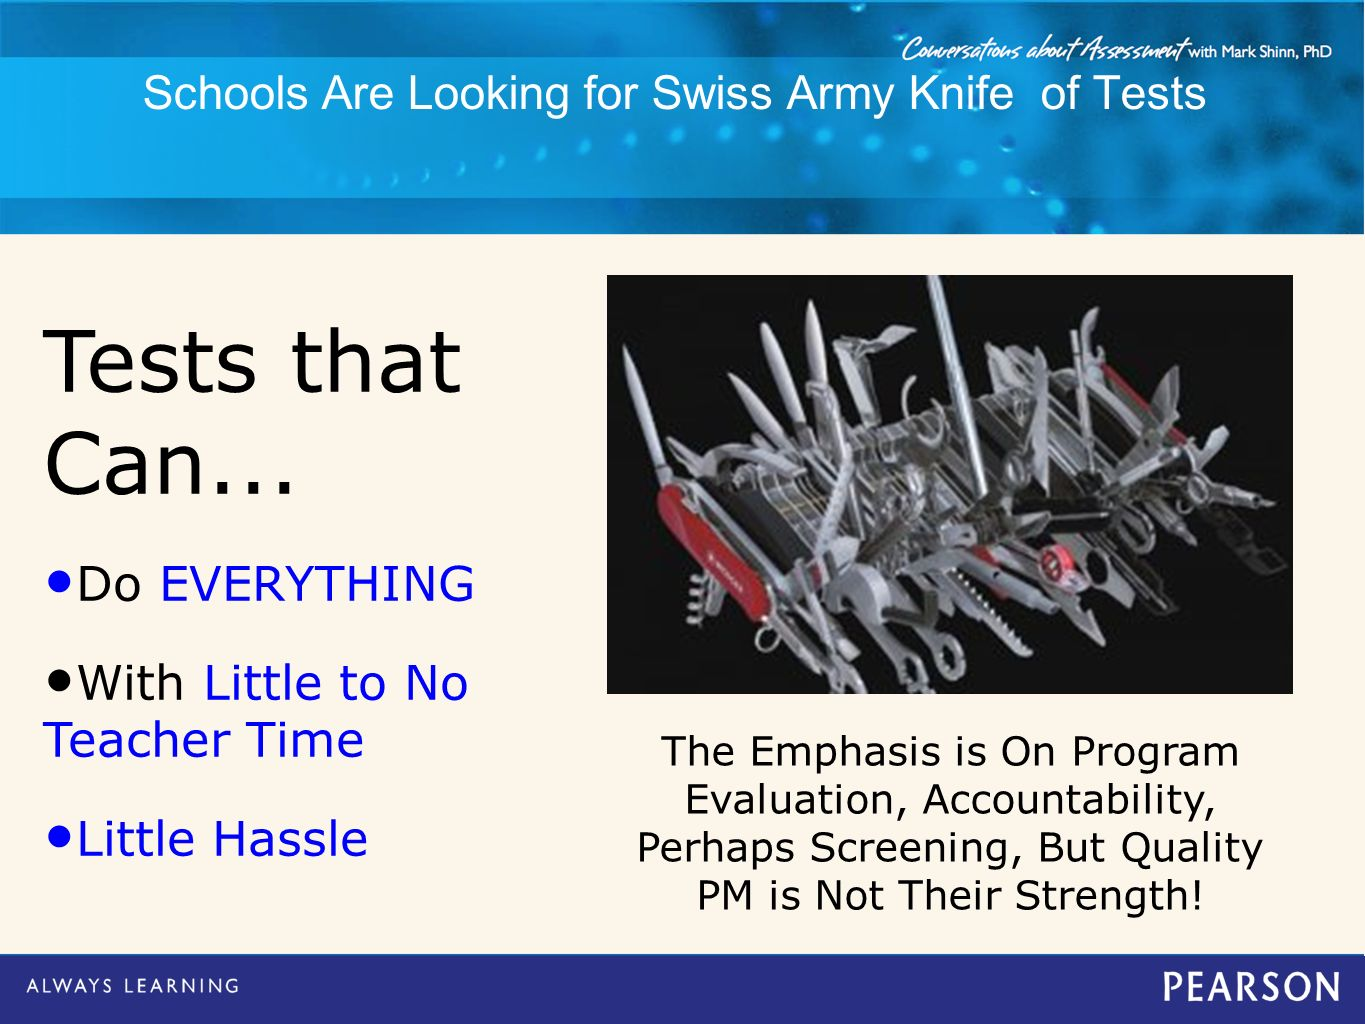 Schools Are Looking for Swiss Army Knife of Tests Tests that Can... Do EVERYTHING With Little to No Teacher Time Little Hassle The Emphasis is On Prog